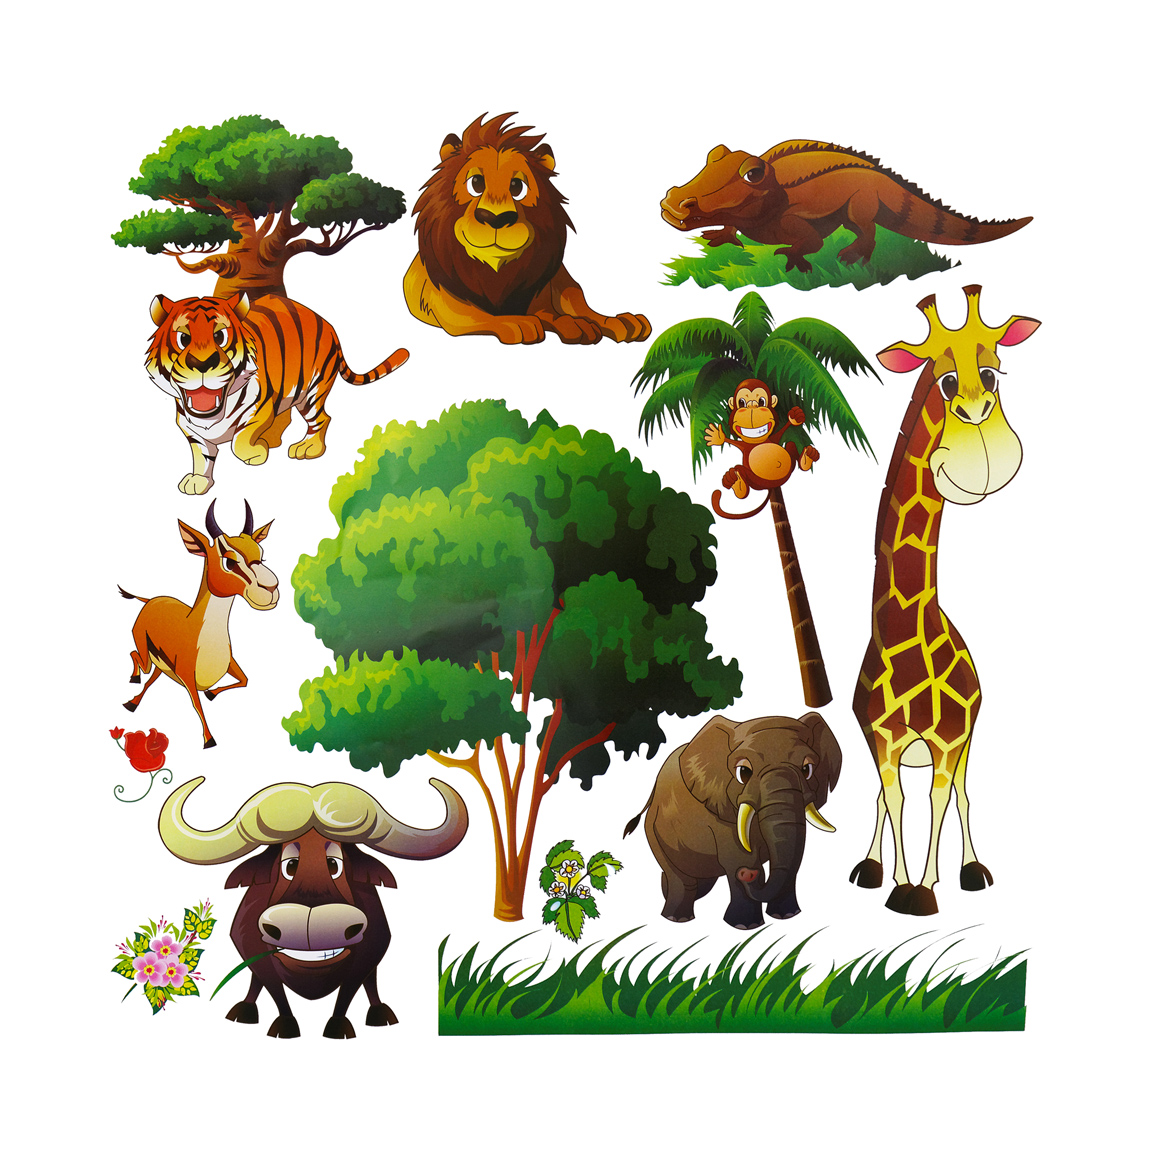 Animal Wall Decals for Kids Room Decor  Dekosh